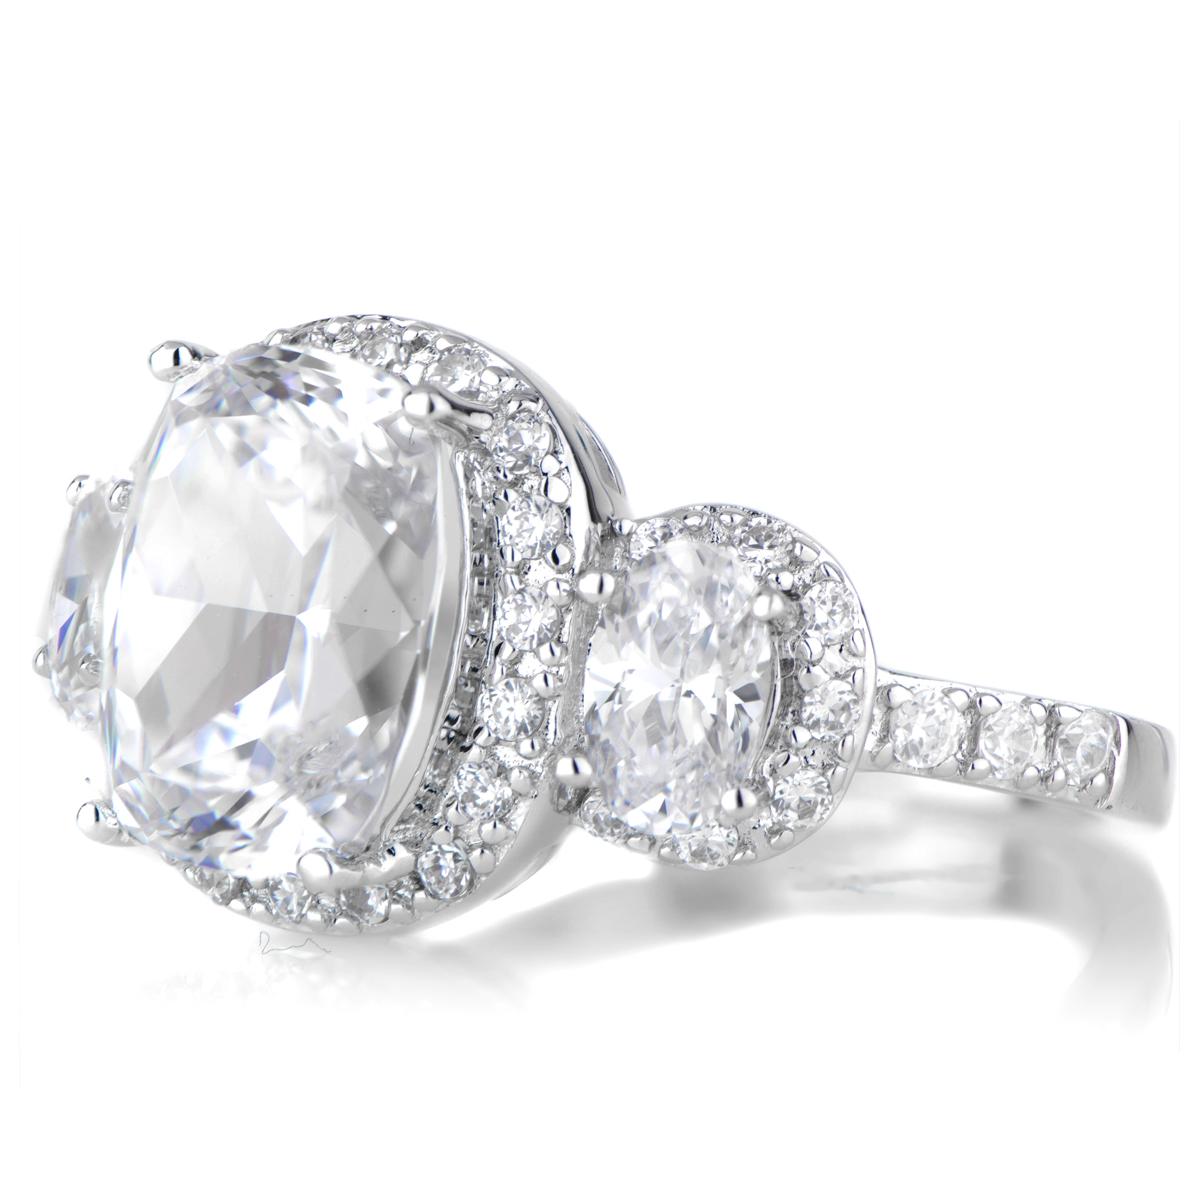 Emily s 3 Stone Halo Cushion Cut Engagement Ring